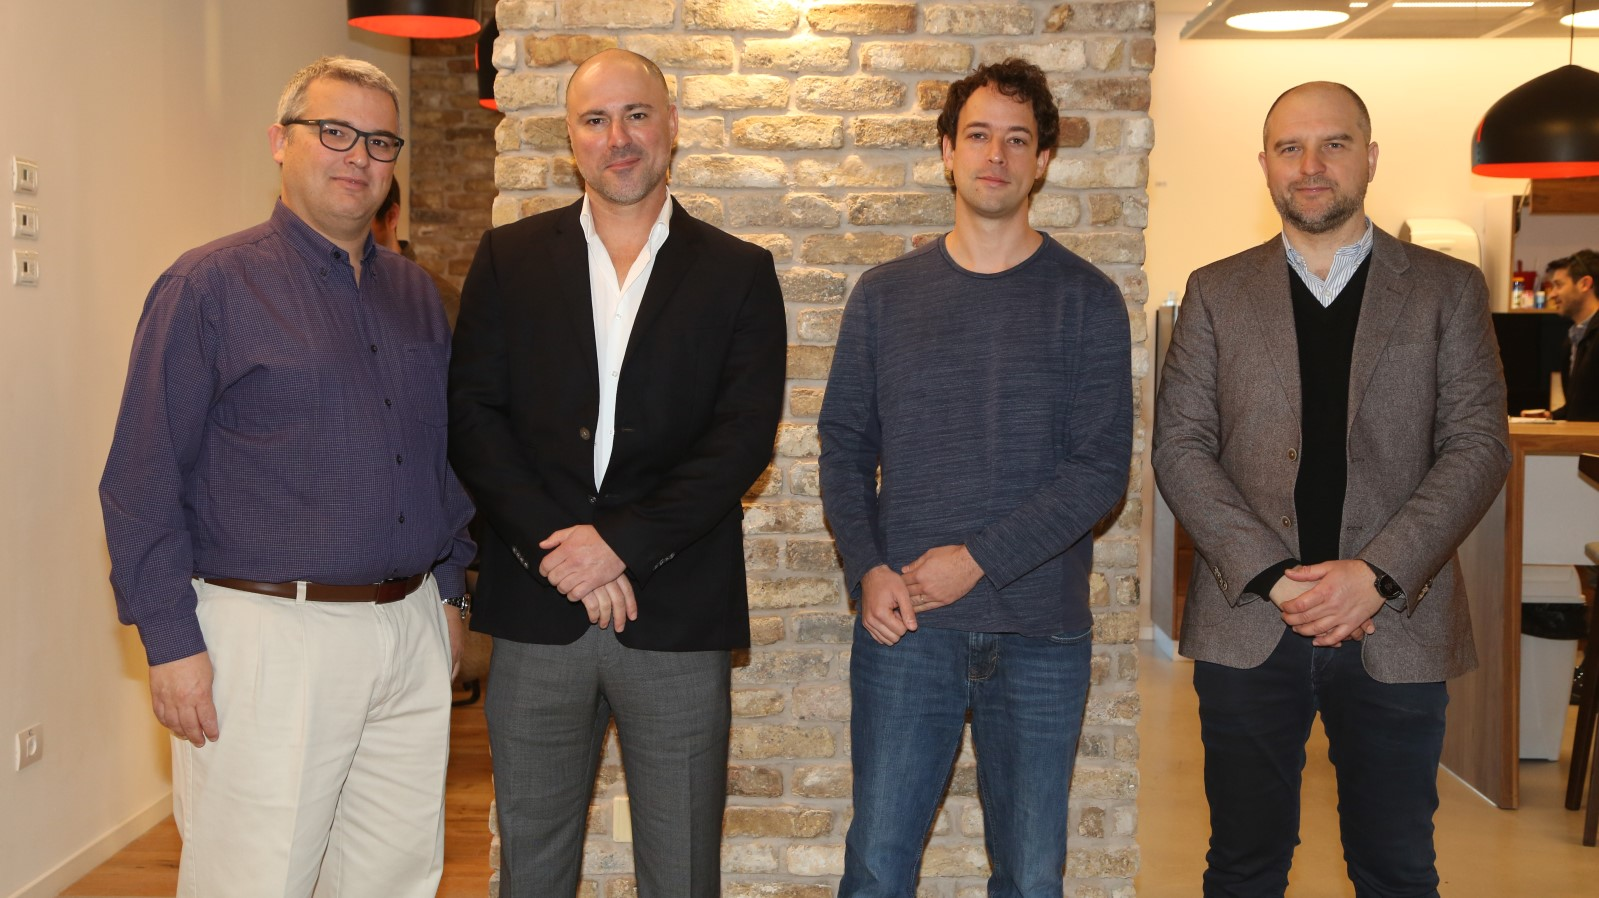 Attending the January 2017 launch of the Oracle Startup Cloud Accelerator in Tel Aviv are, from left, Avi Stern, CFO at Wix, Moshe Selfin, COO/CTO and partner at Credorax, Gil Hoffer of Oracle Ravello and Daniel Zaturansky, cofounder and COO of Powtoon. Photo by Sally Farag